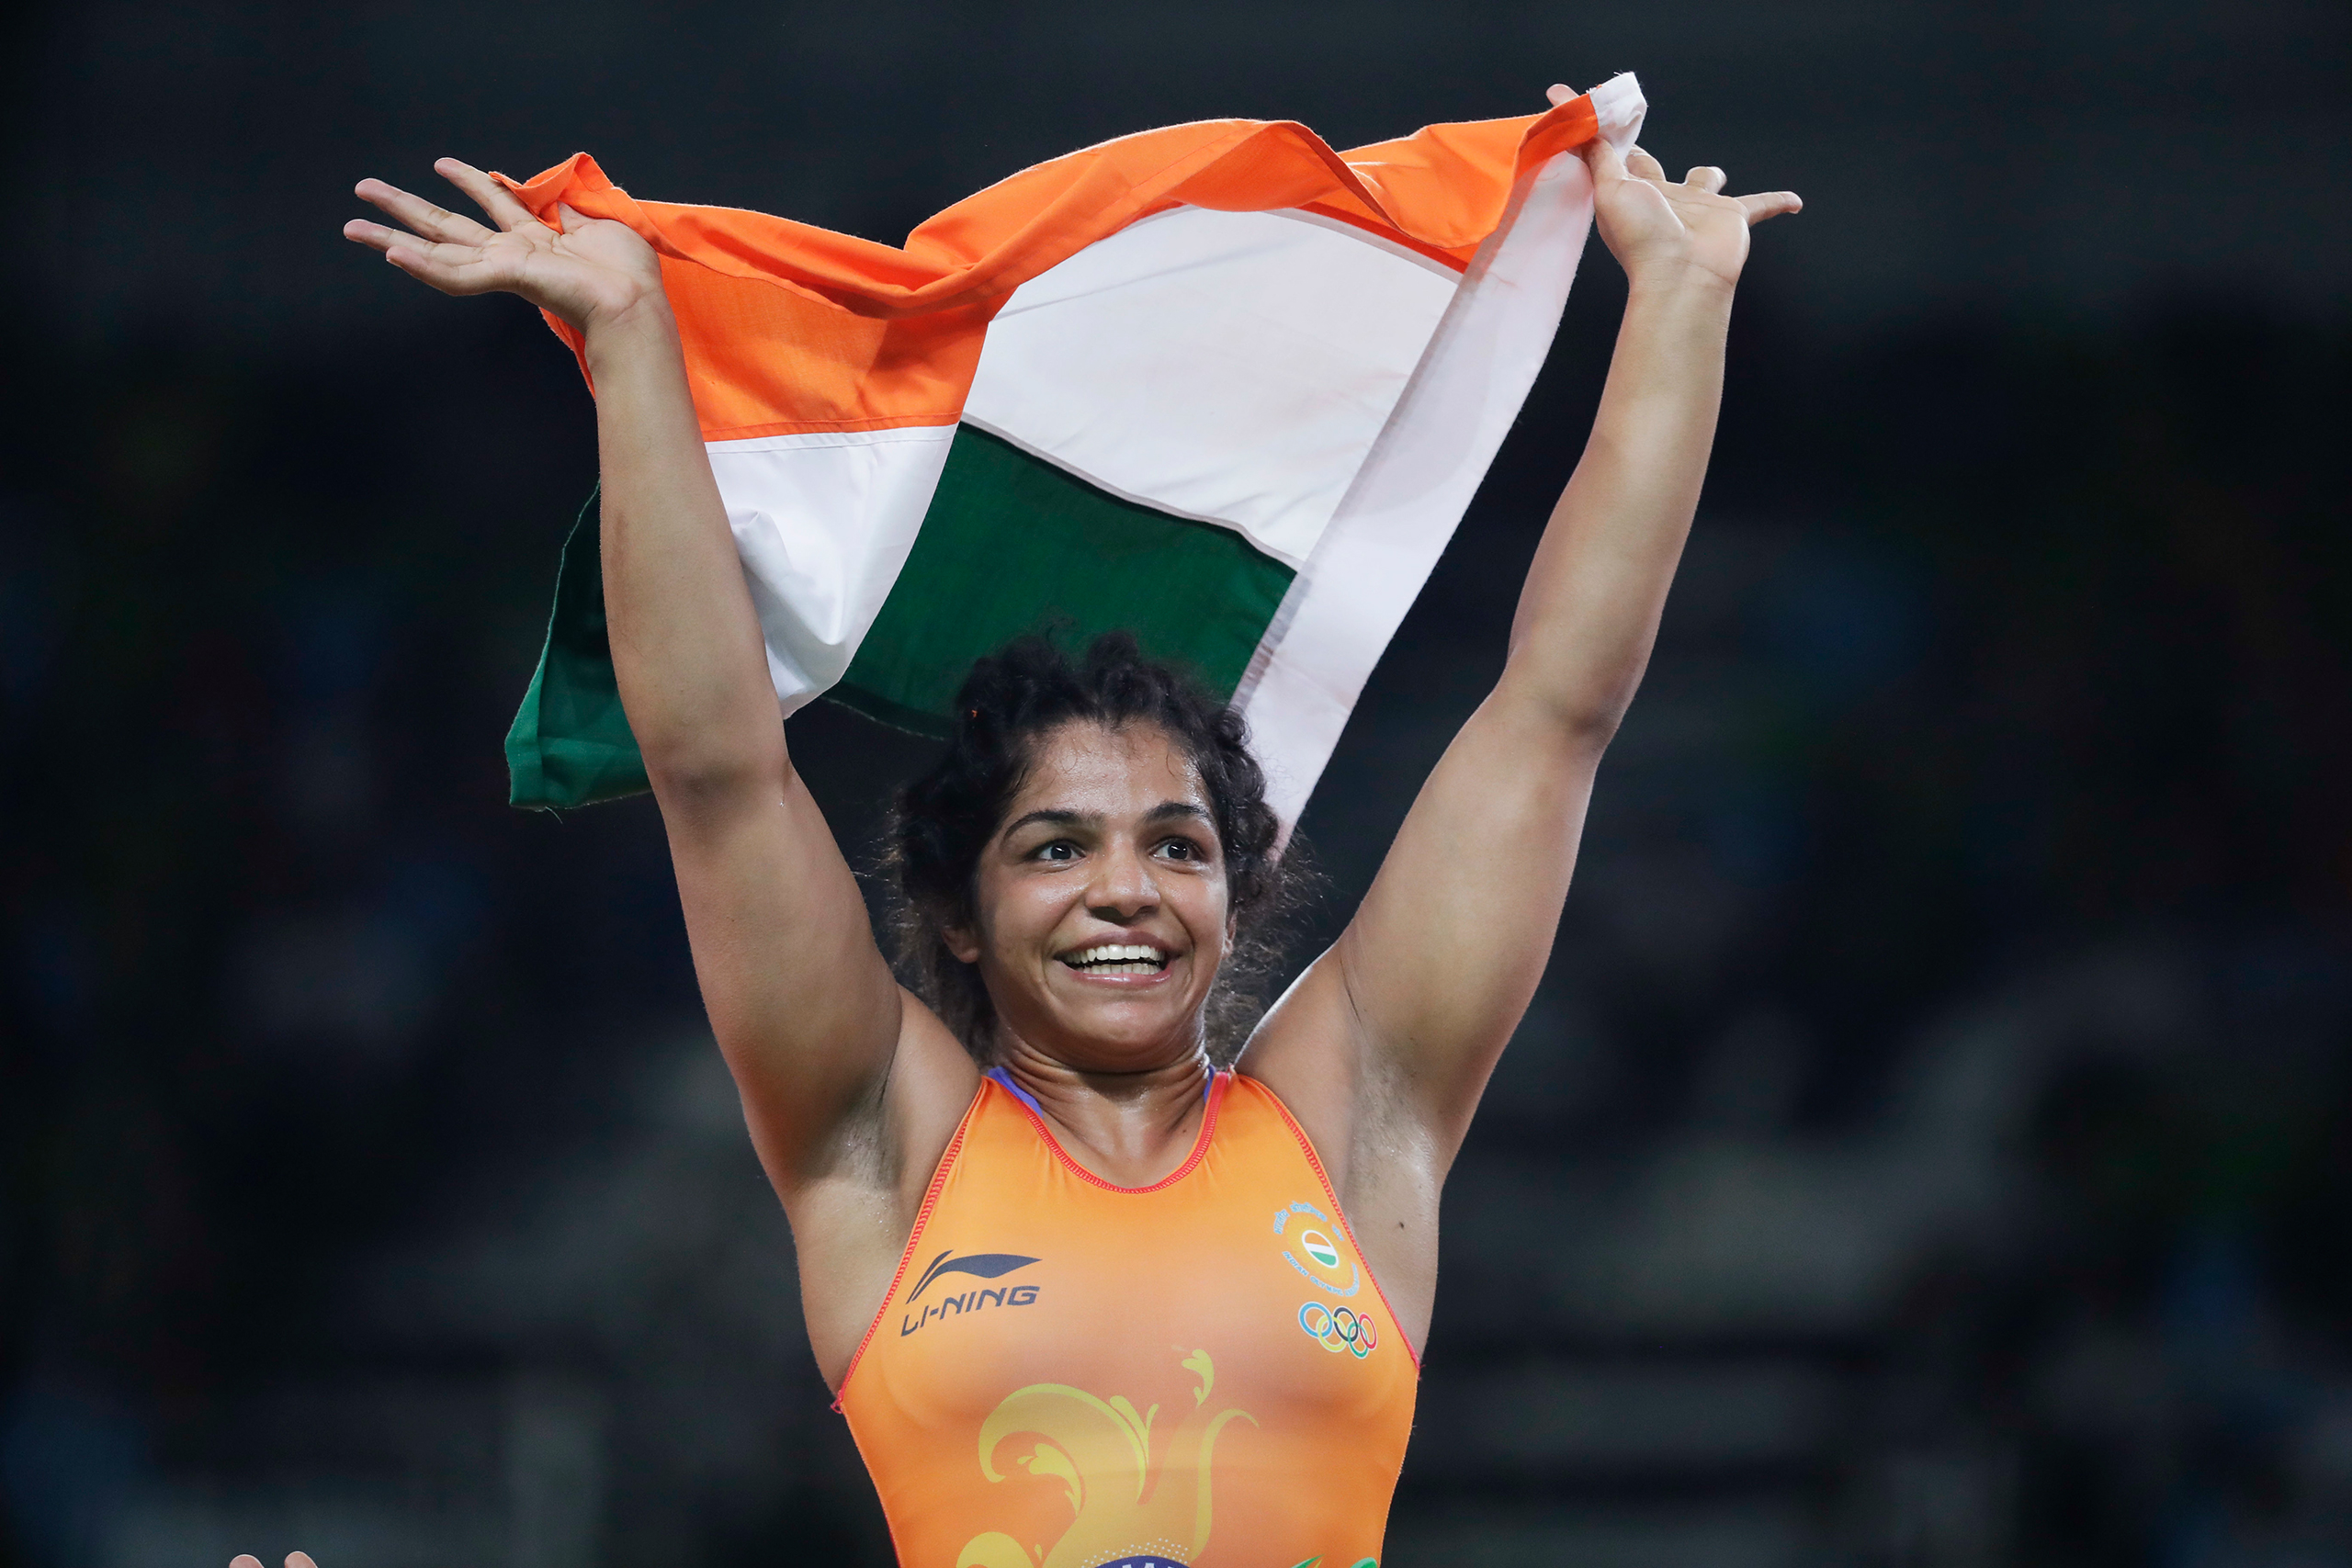 India's Sakshi Malik reacts after winning bronze against Kyrgyzstan's Aisuluu Tynybekova in the women's wrestling freestyle 58-kg competition at the 2016 Summer Olympics in Rio de Janeiro on Aug. 17, 2016.